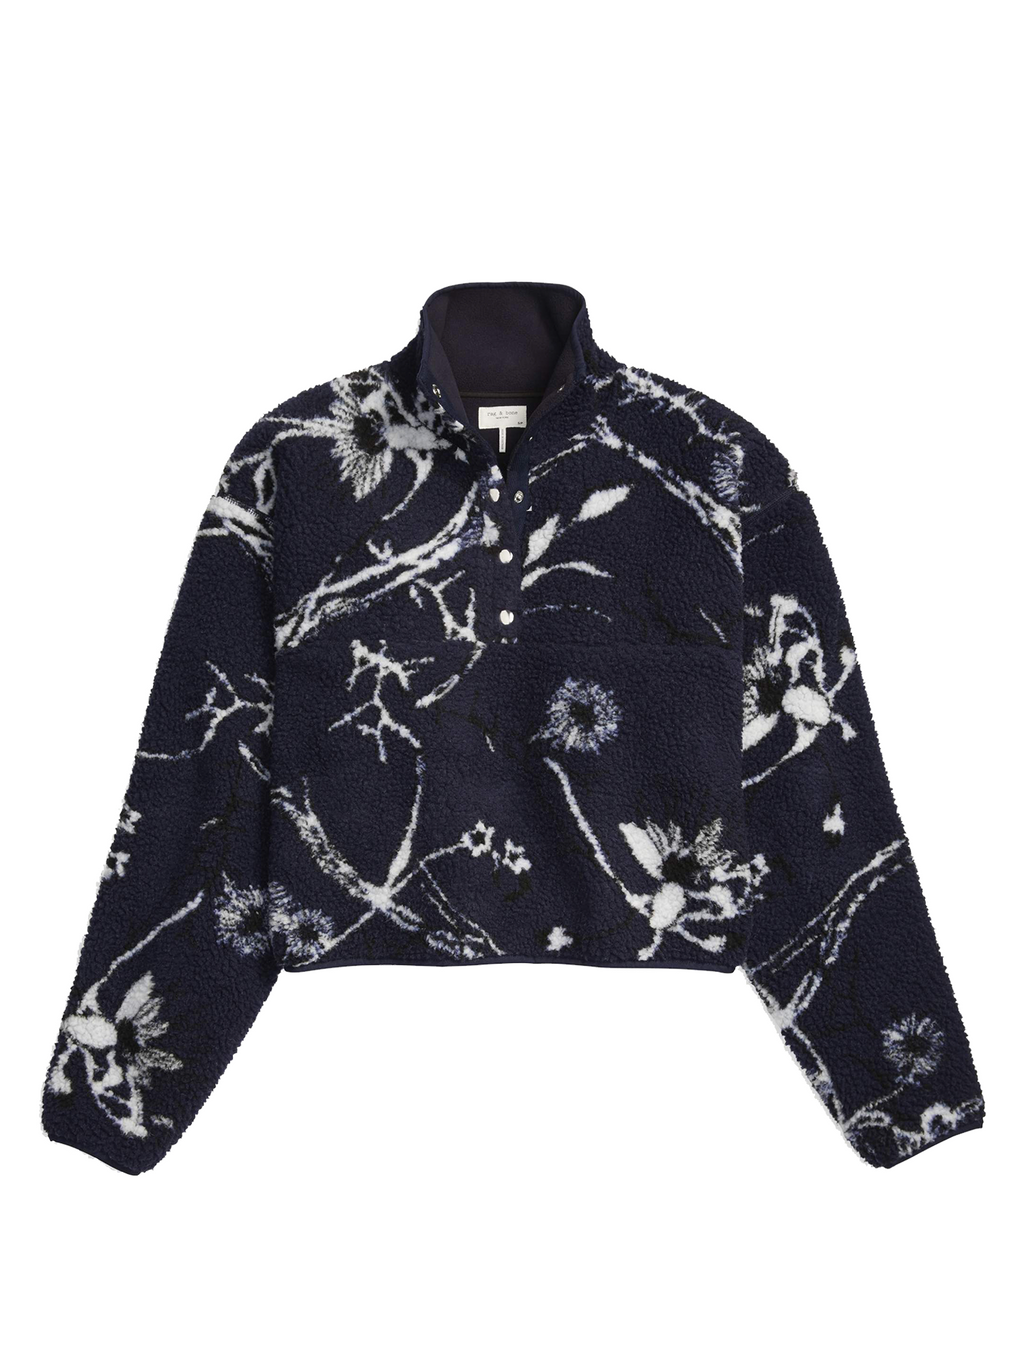 Rag & Bone Floral Sherpa Pullover Sweater